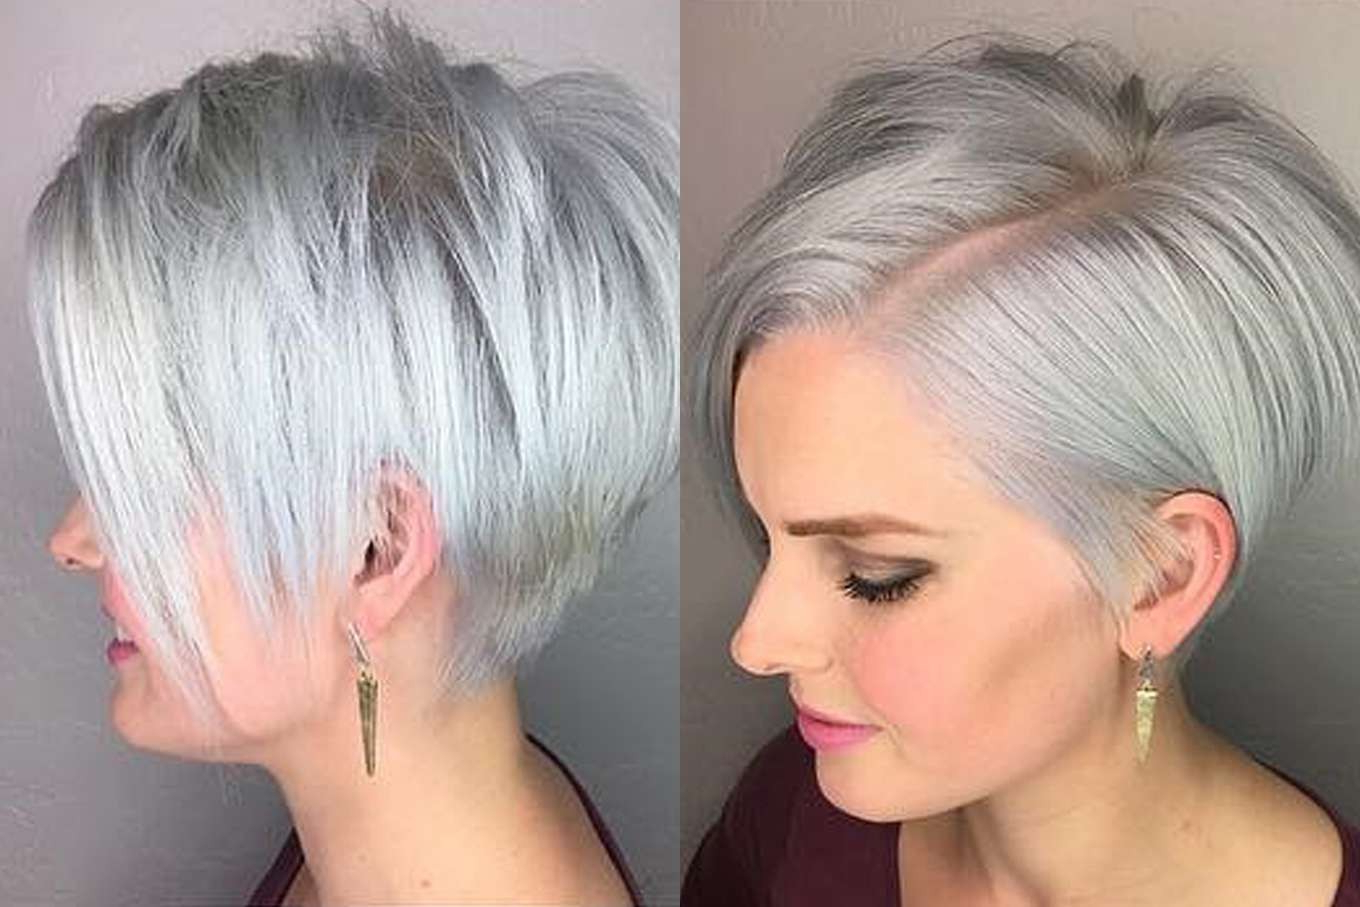 Hairstyles For Short Grey Hair Short Hairstyles With Regard To Short Hairstyles For Salt And Pepper Hair (View 11 of 25)